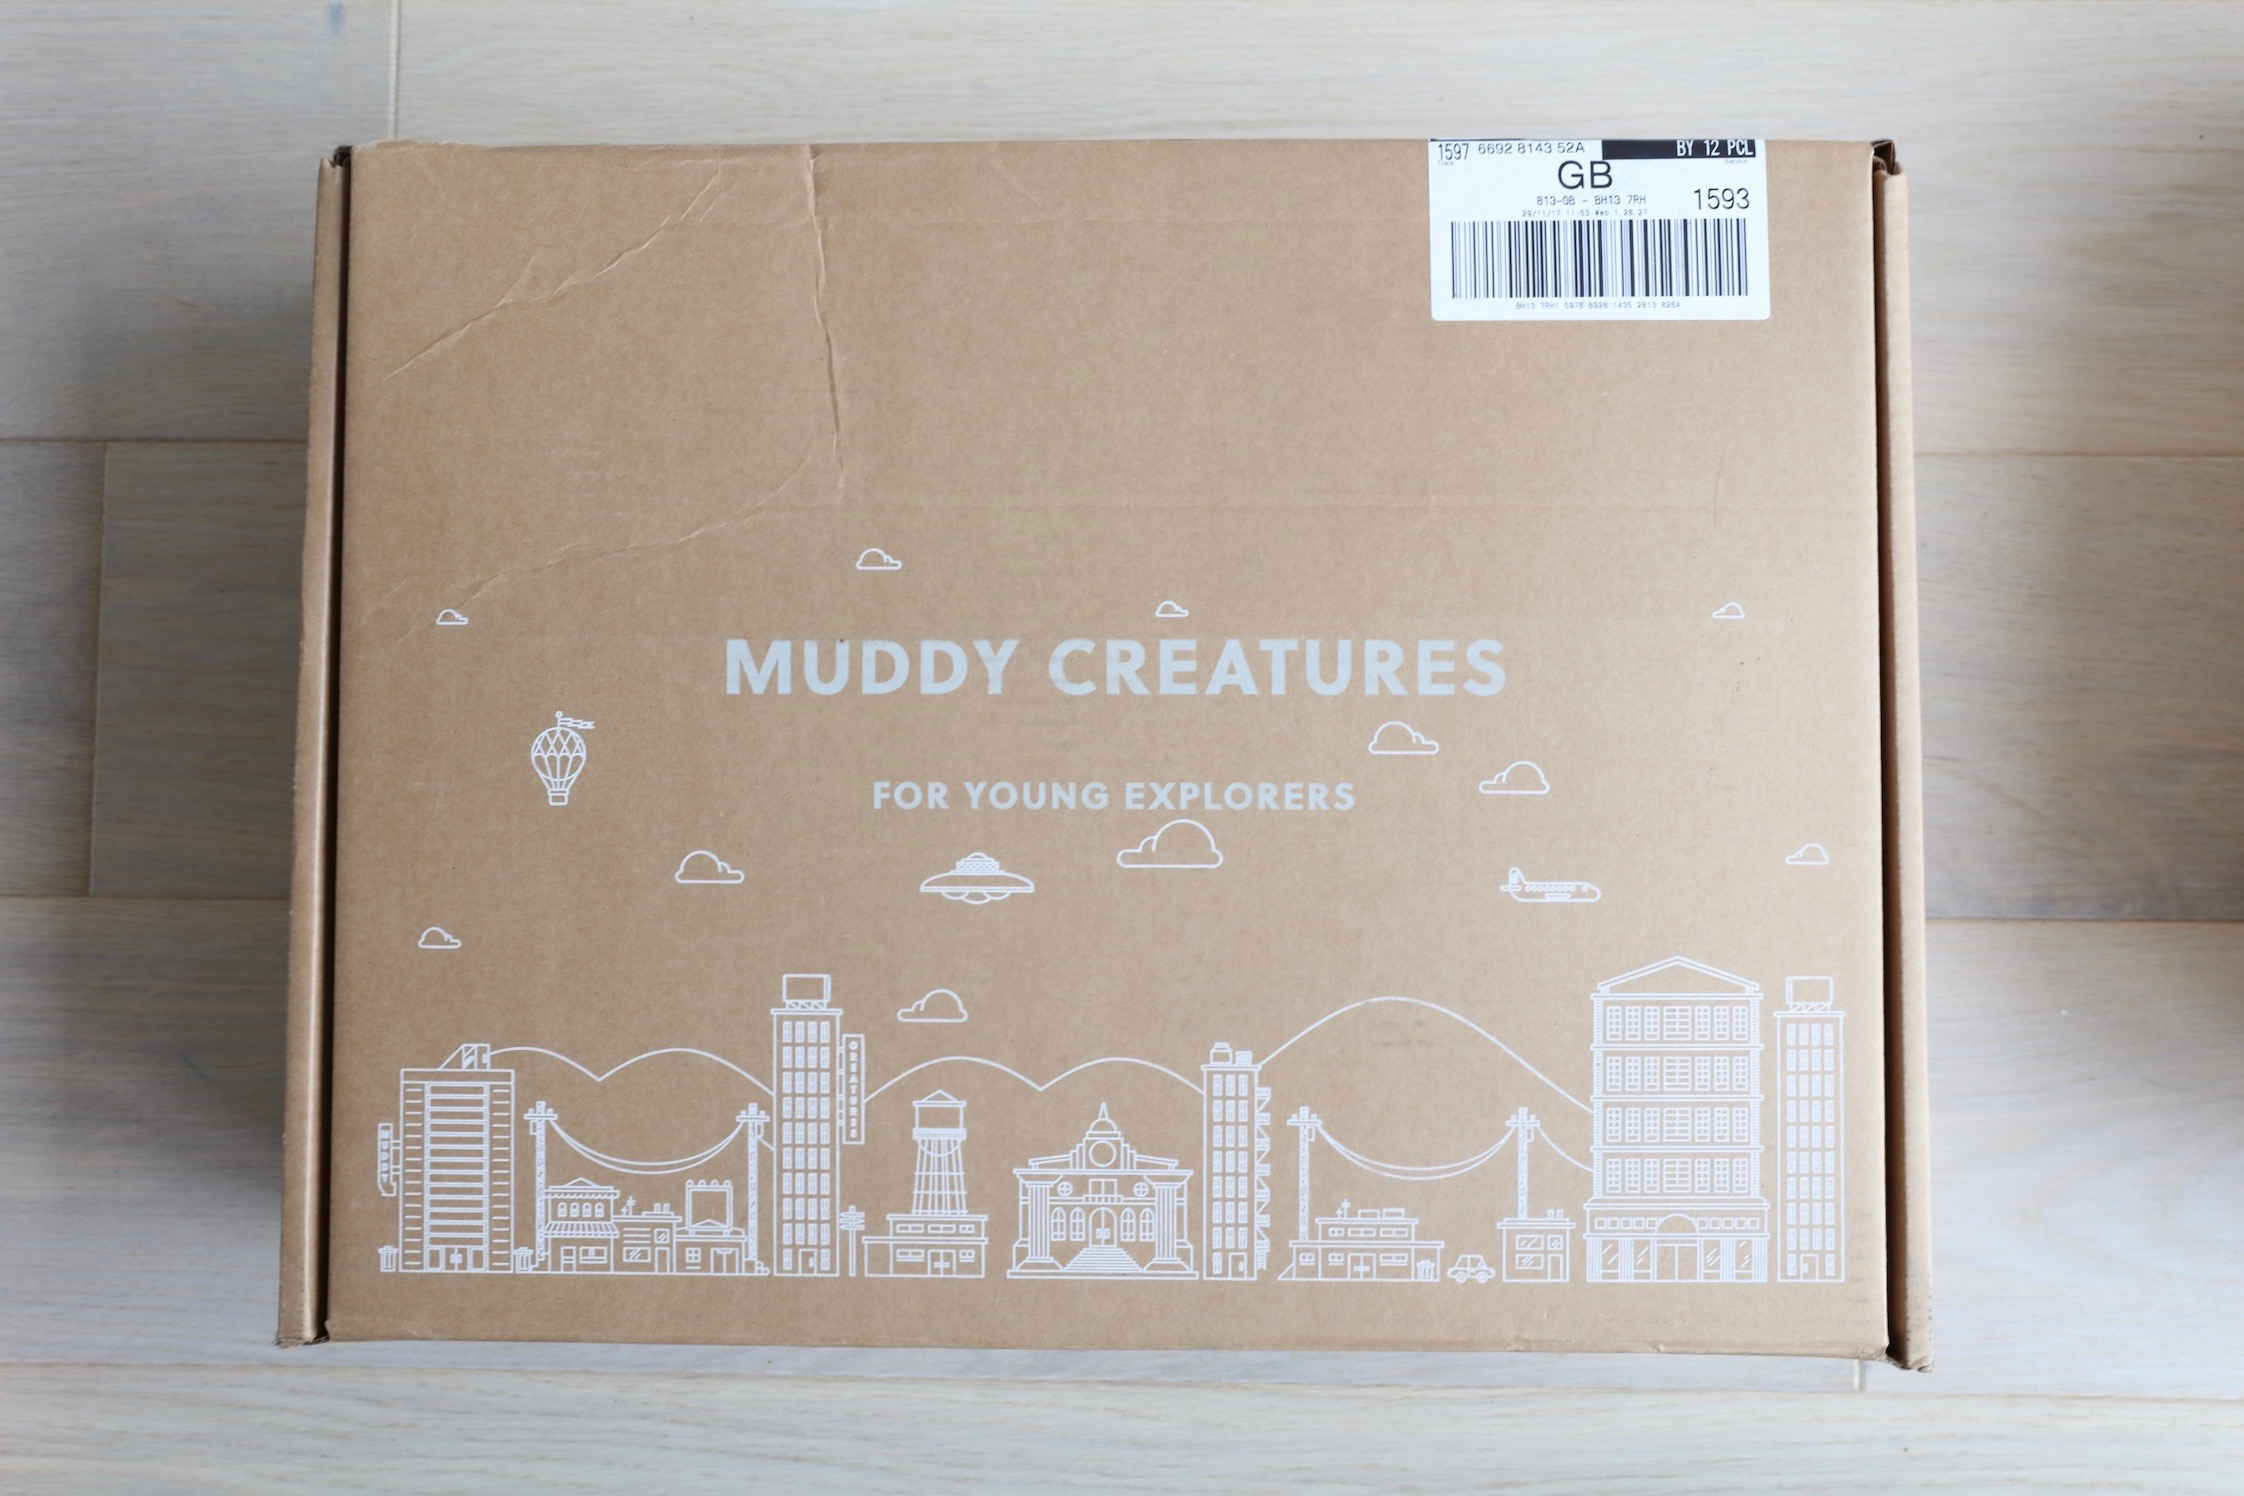 Muddy_creatures_box